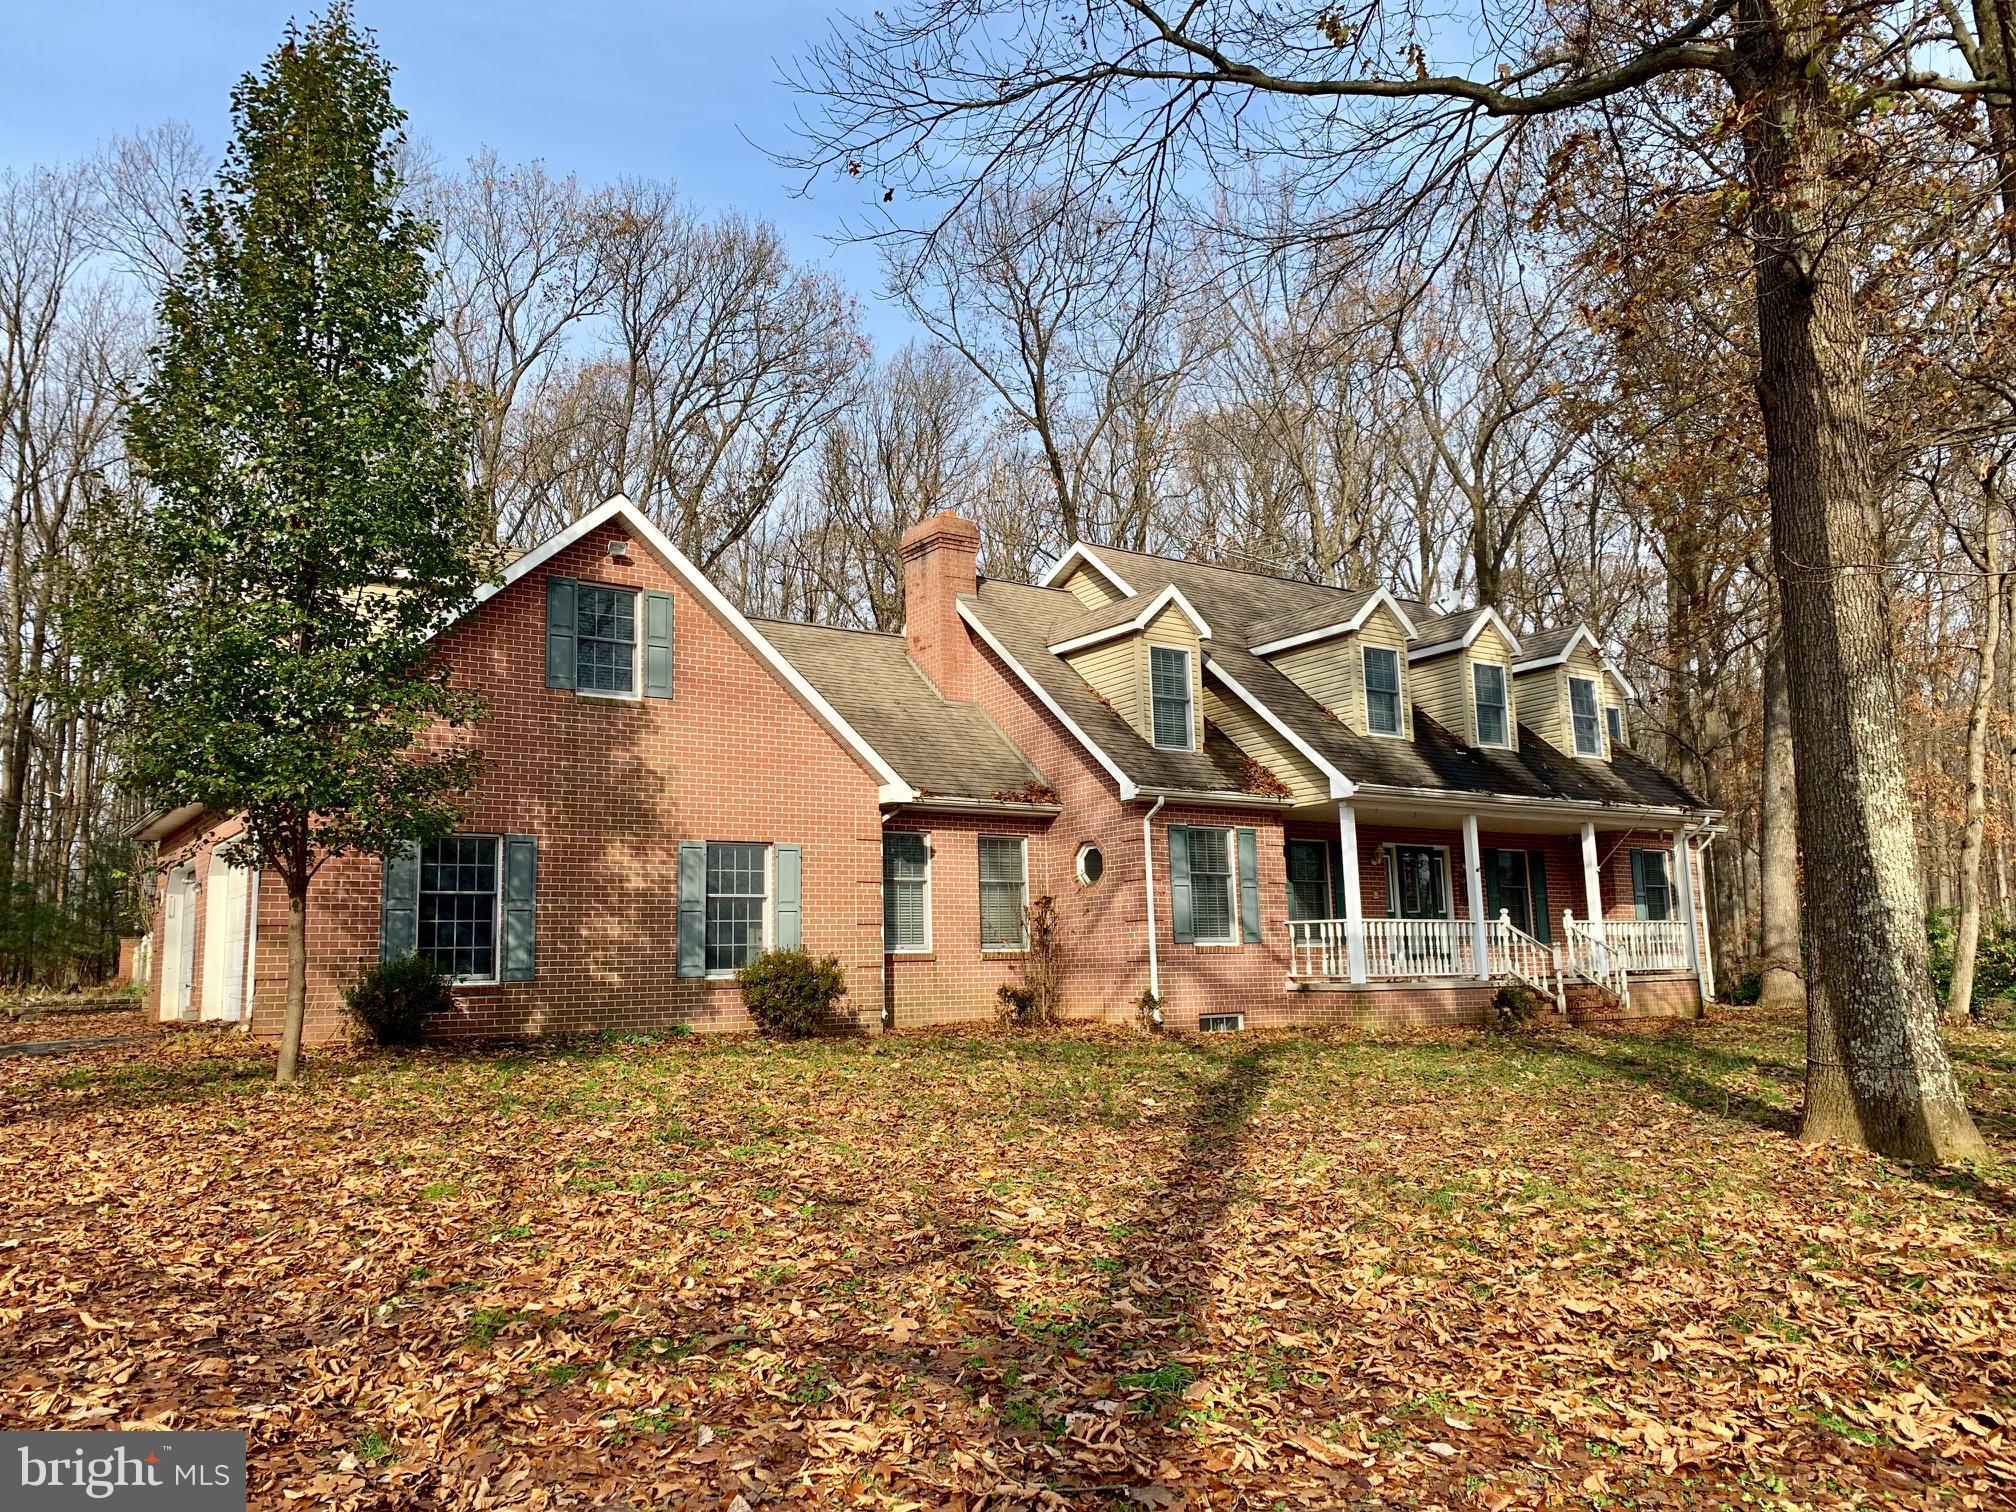 7467 HICKORY ROAD, STEWARTSTOWN, PA 17363